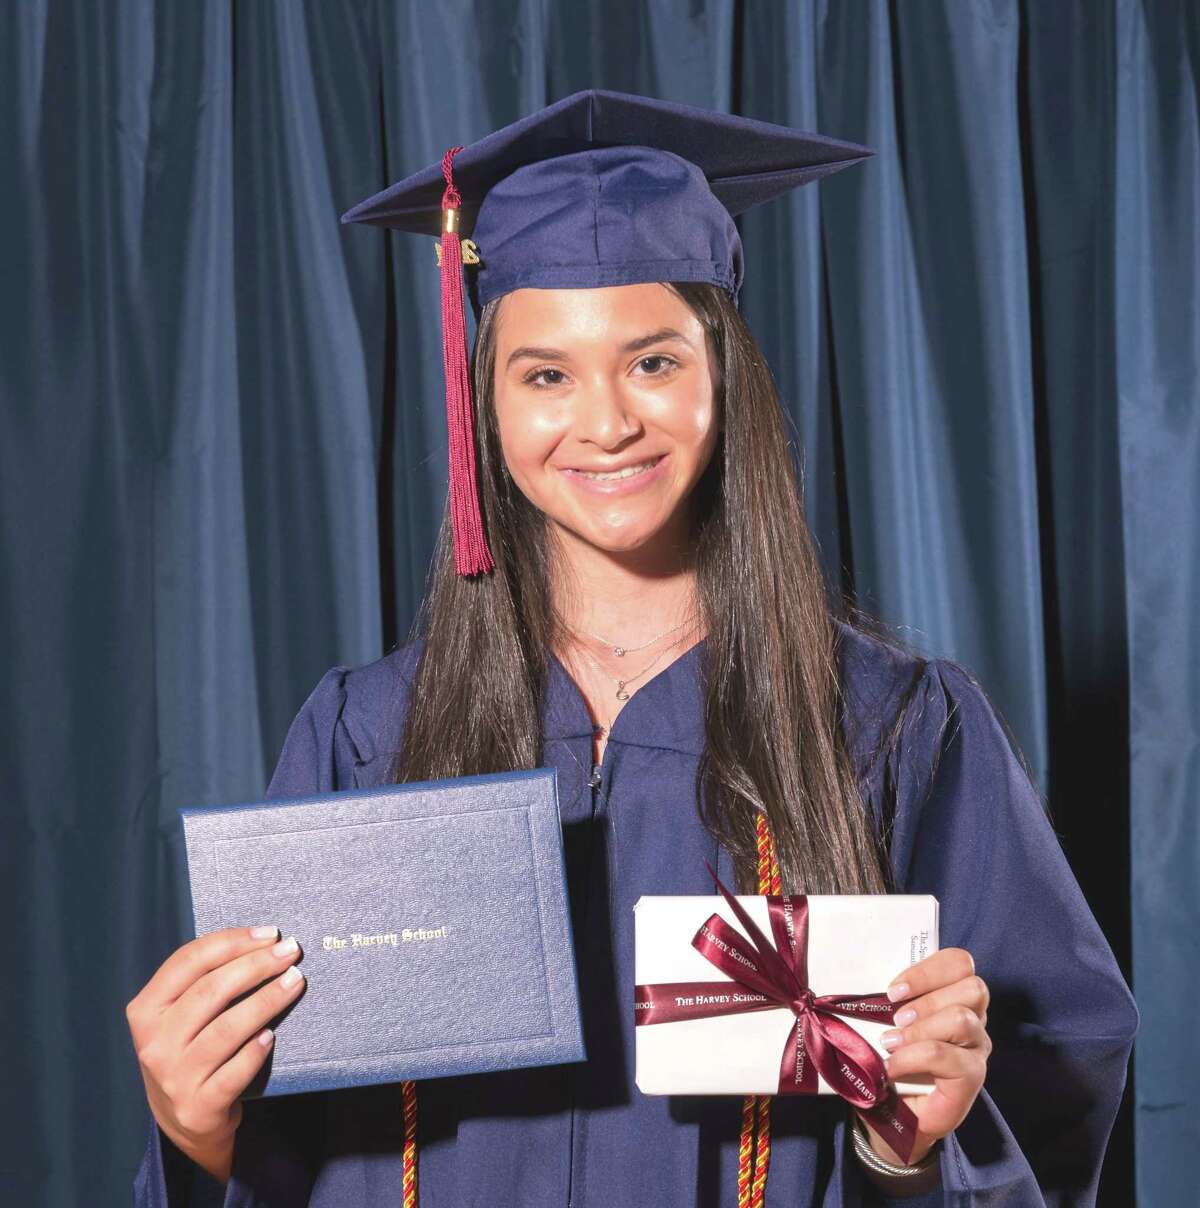 Samantha Fern of Greenwich with her diploma and Spanish Prize at The Harvey School 2021 commencement June 10.